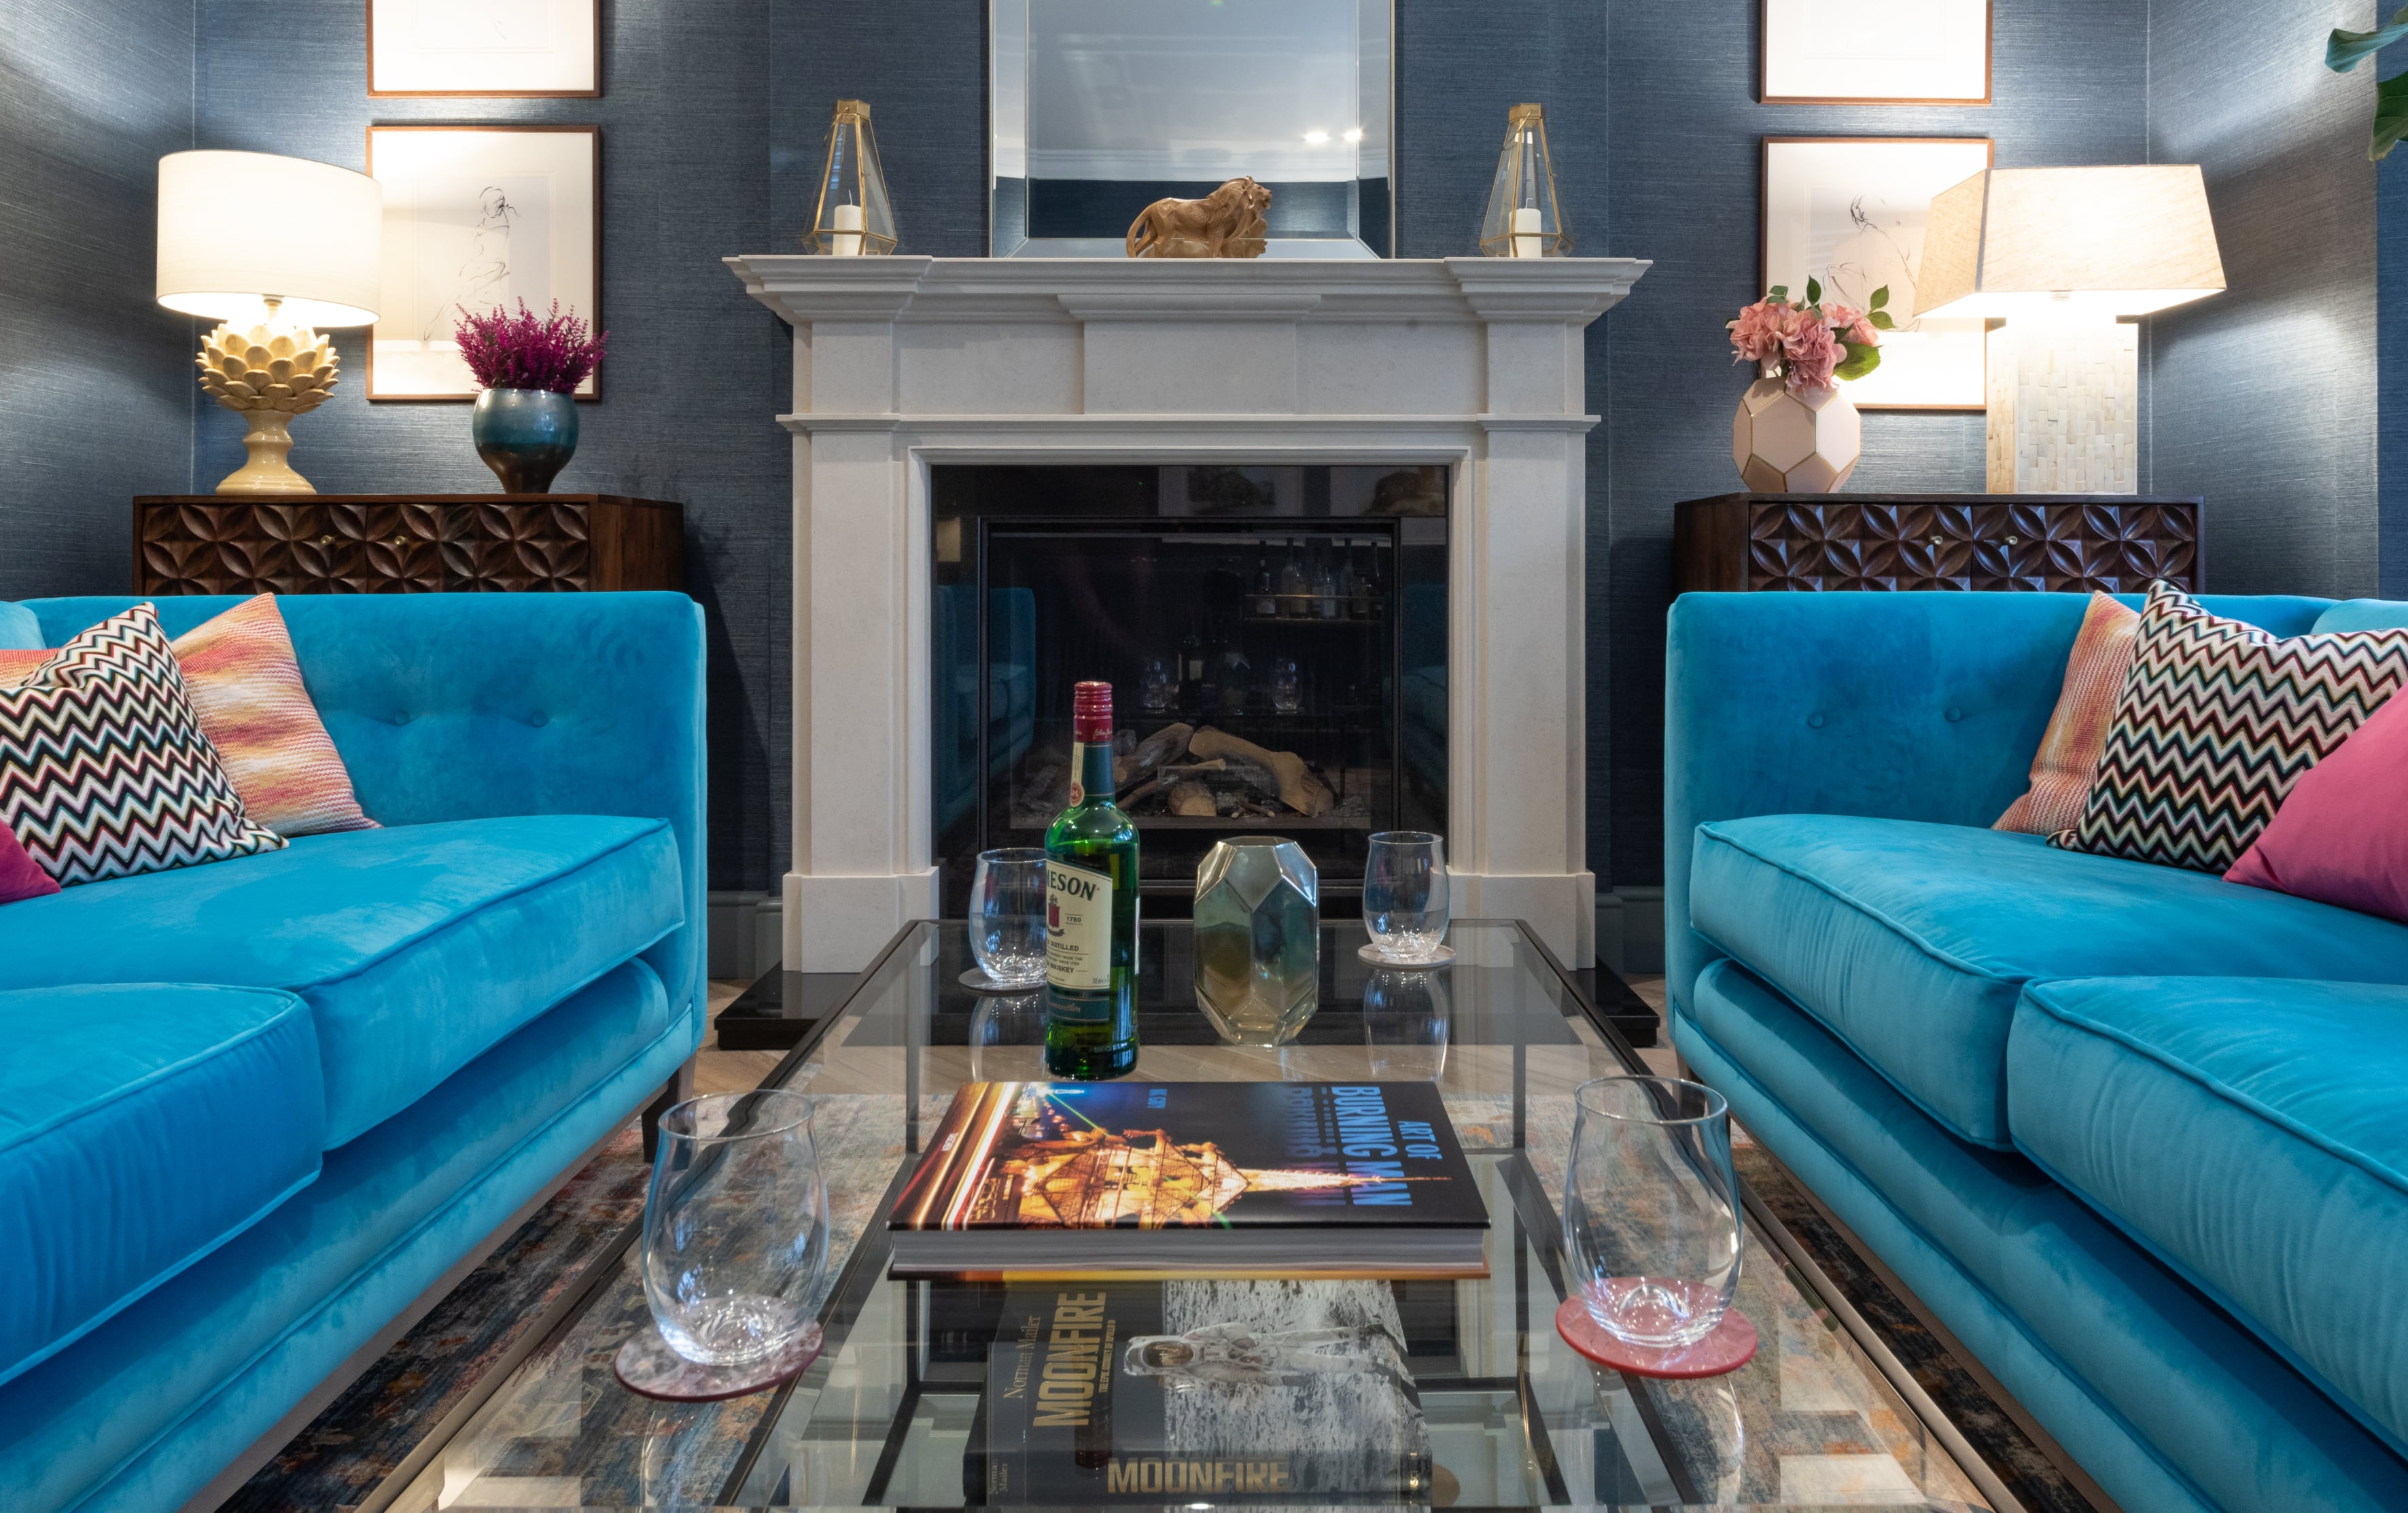 Luxury living room design in Richmond Surrey with blue sofas and ornate fireplace